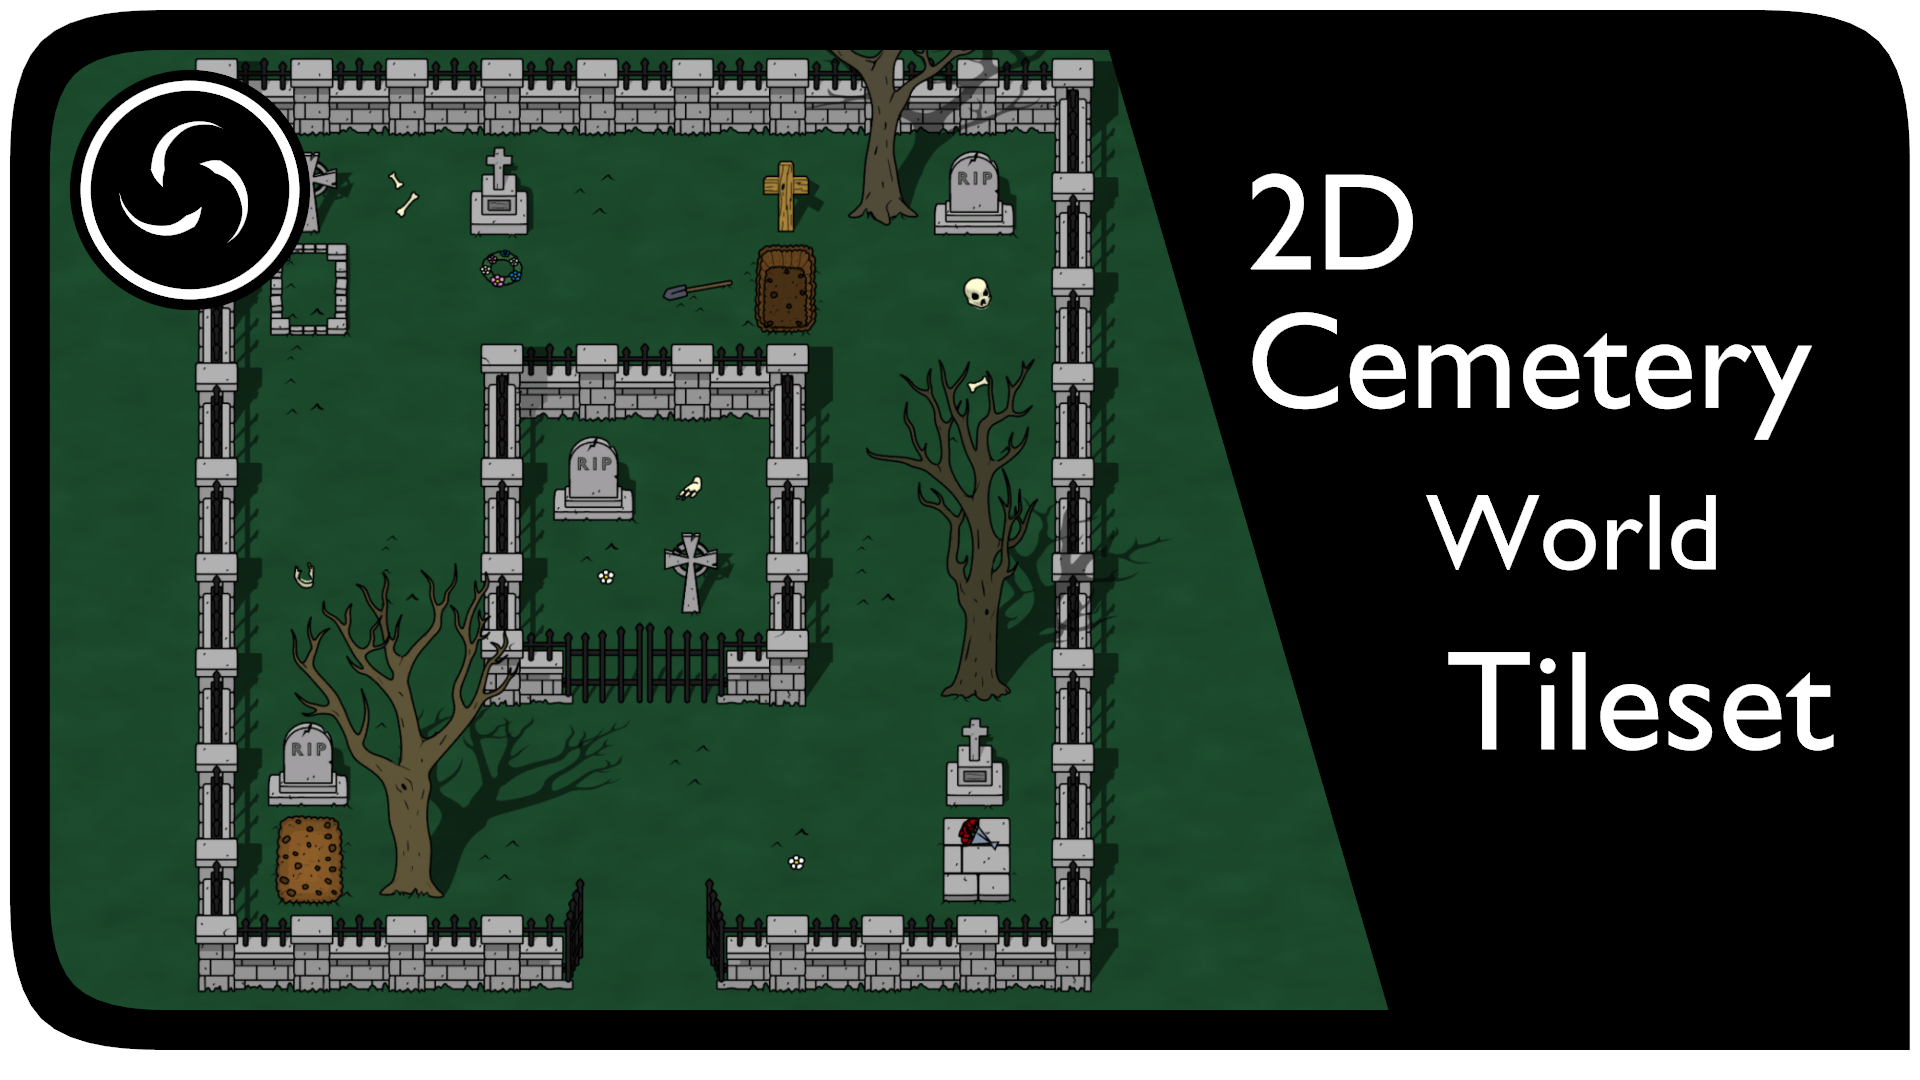 2D Cemetery World Tileset